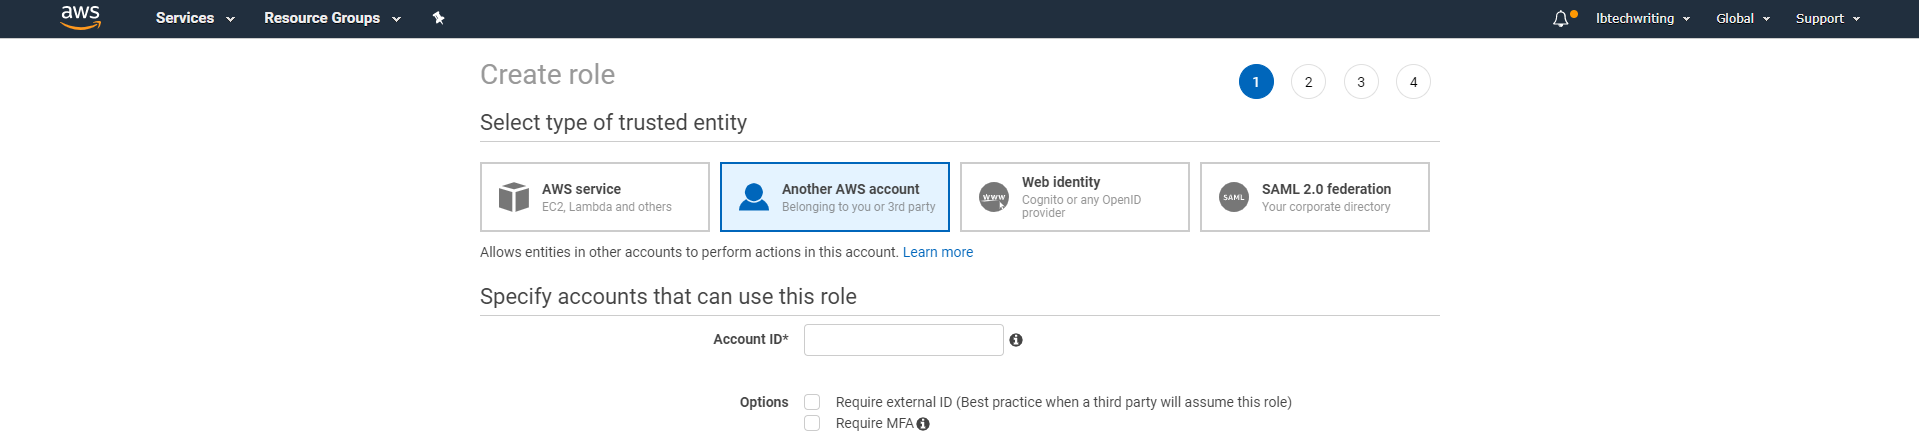 another-aws-accnt